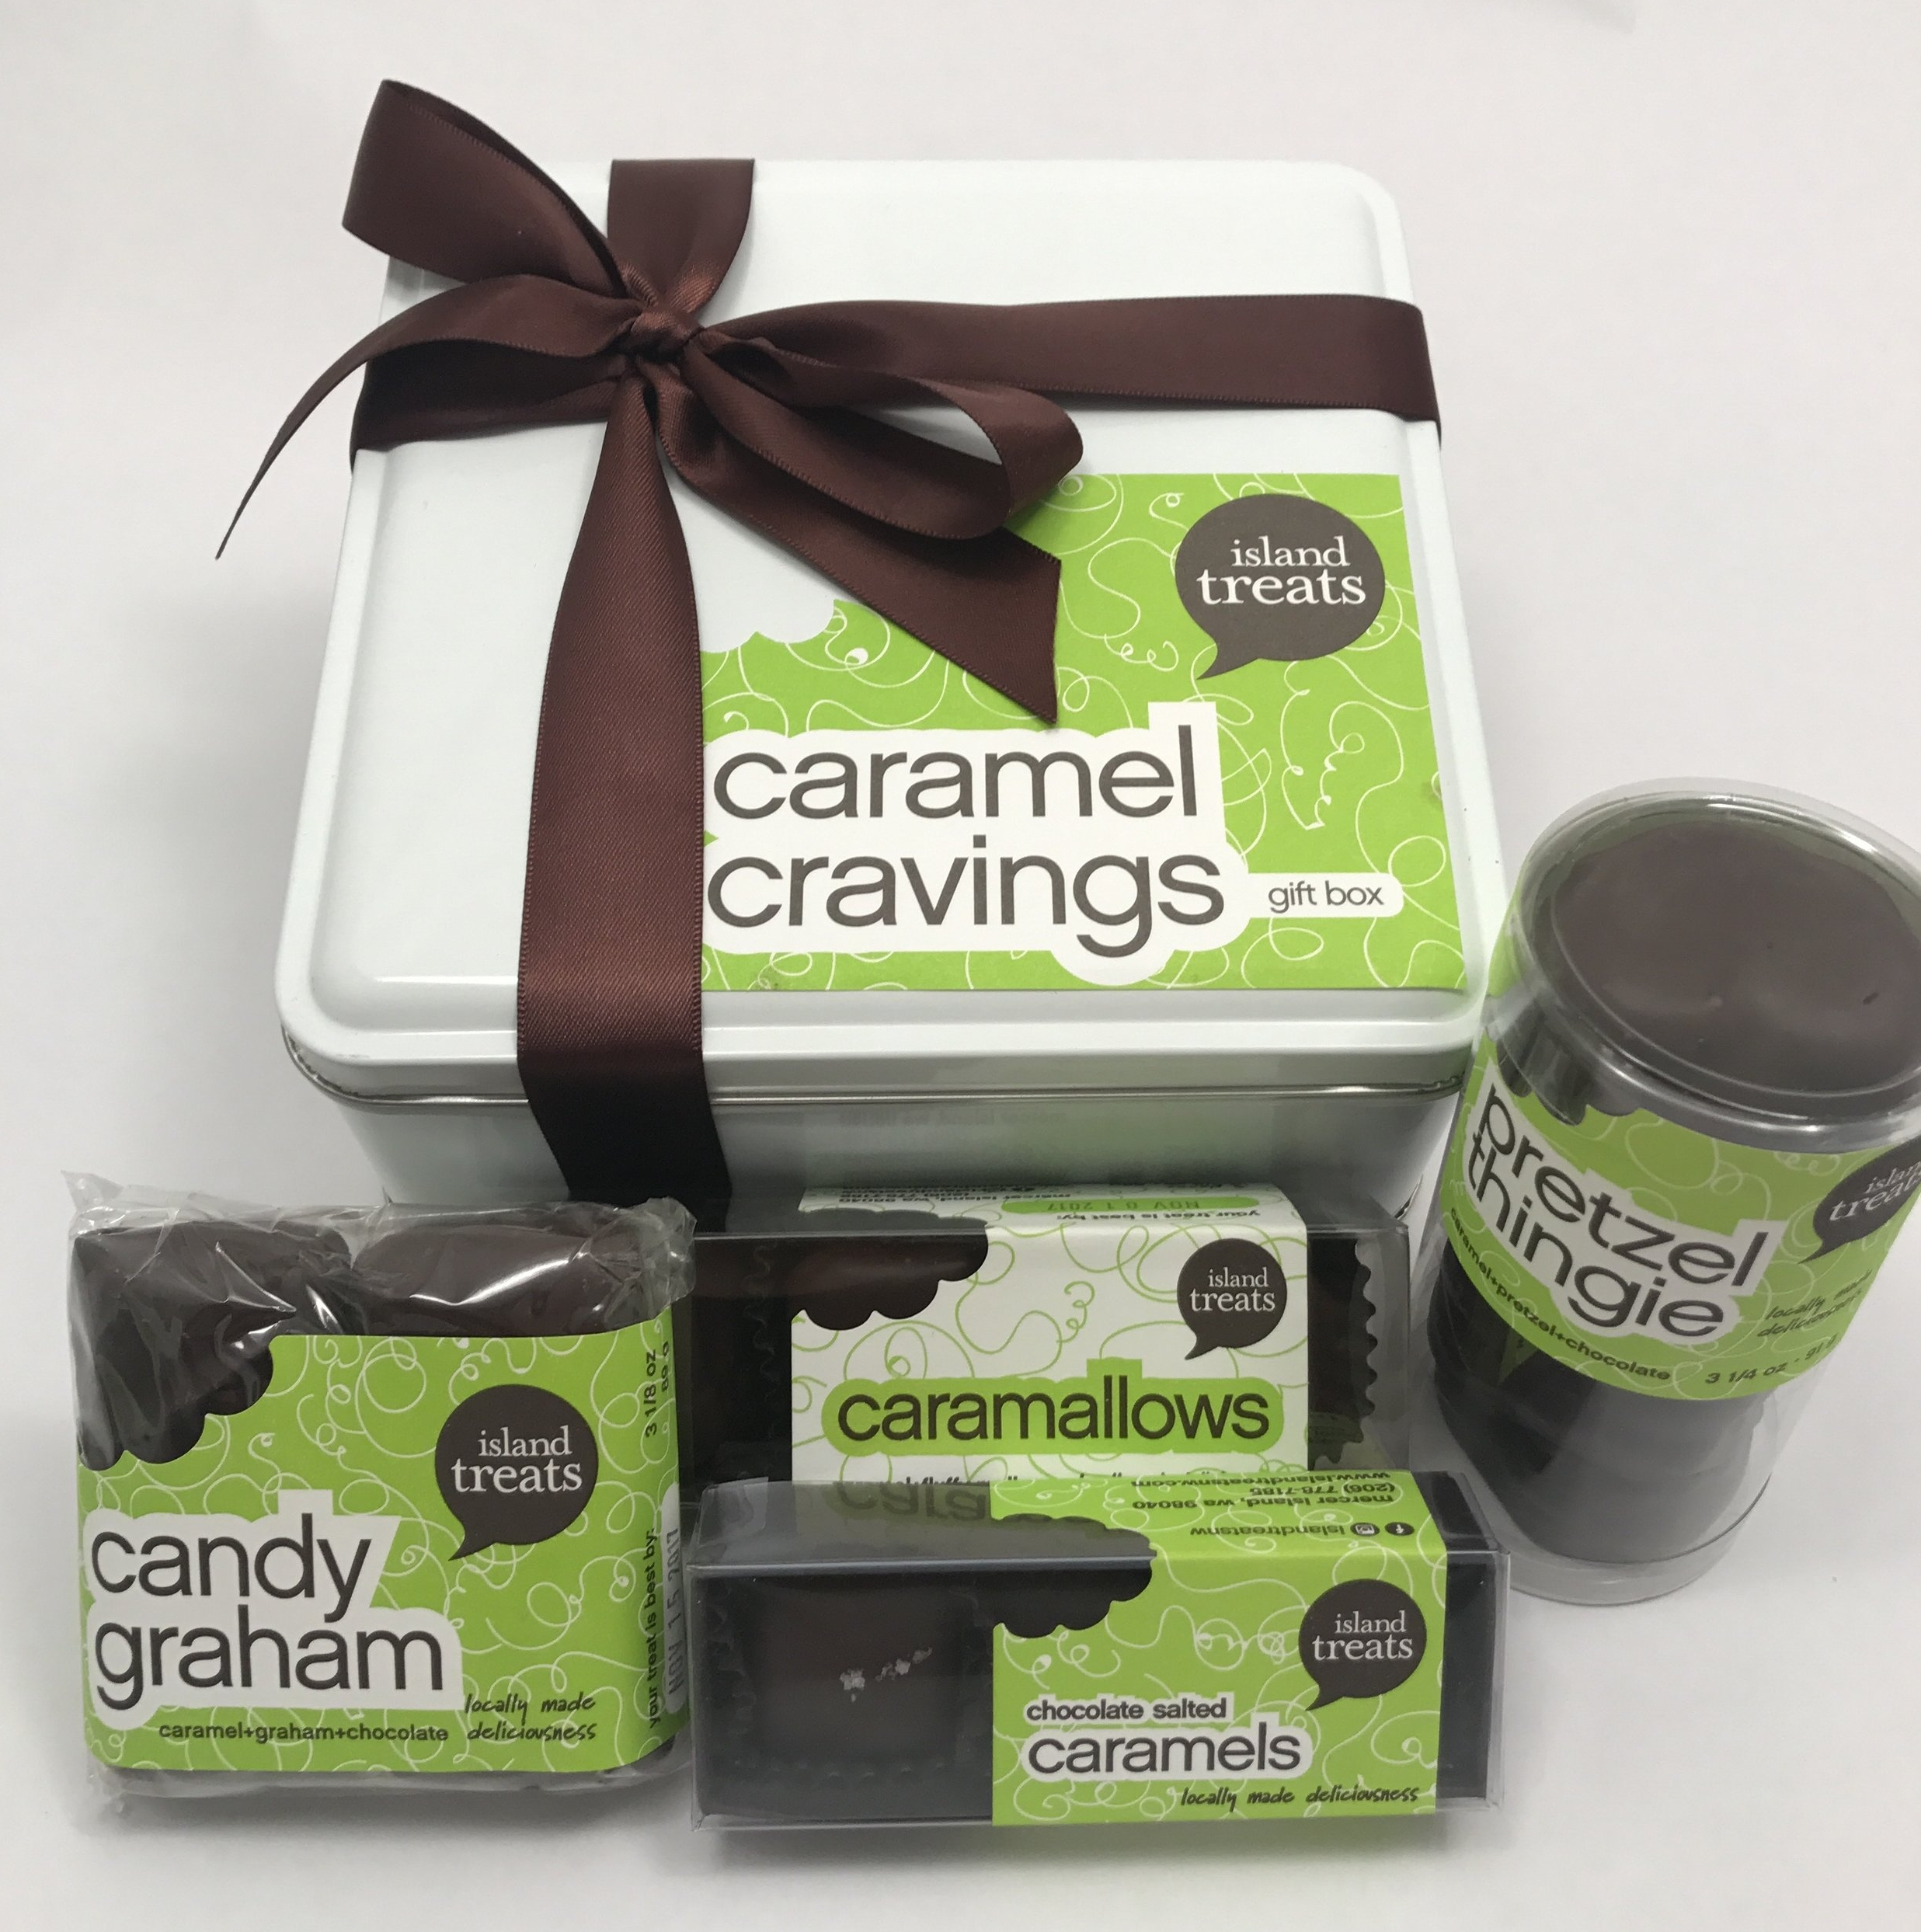 caramel cravings.jpg